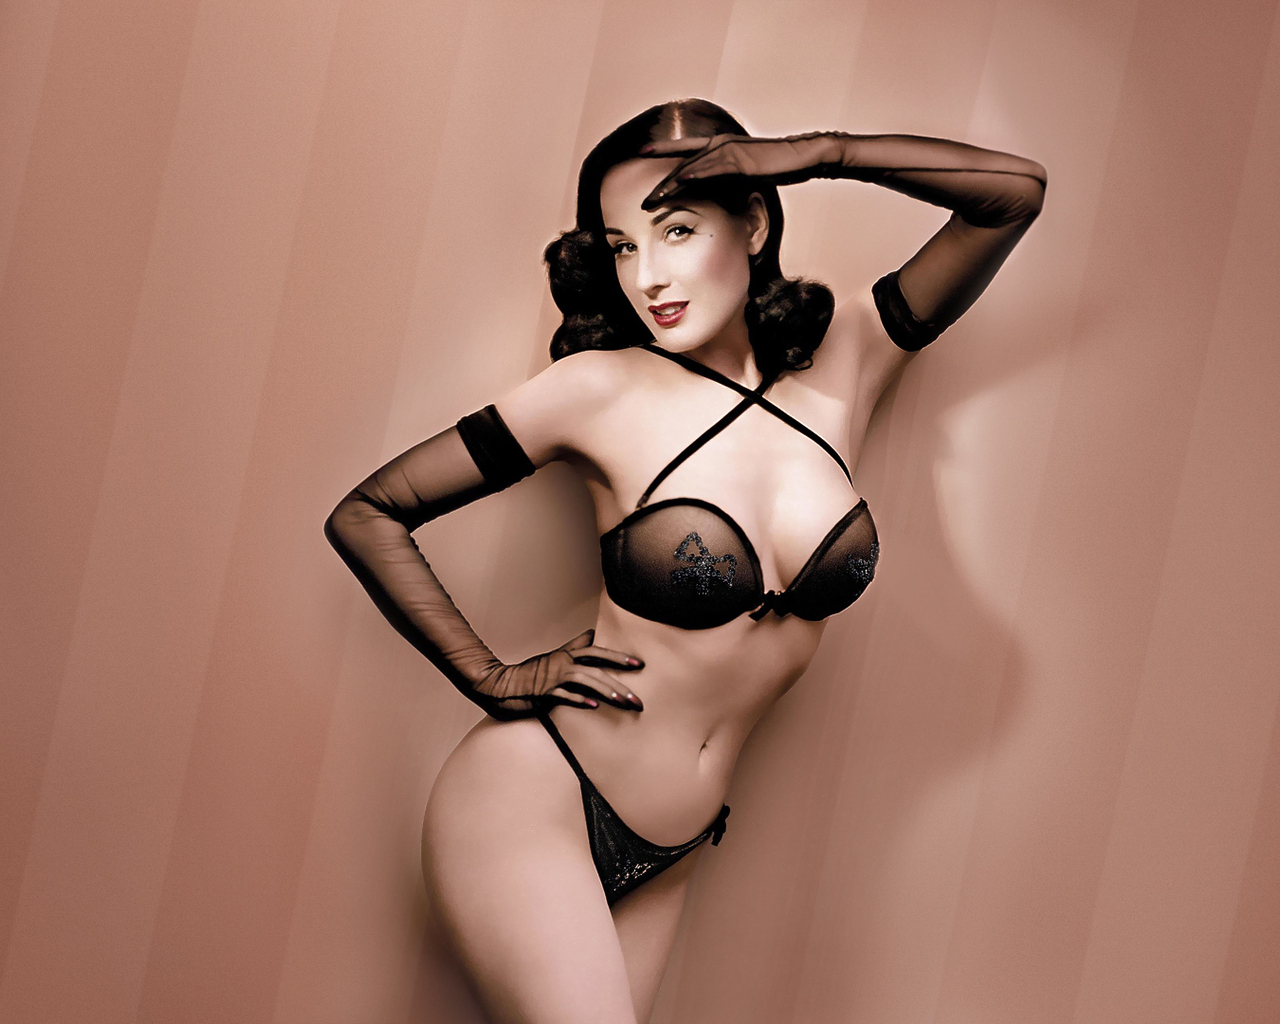 Confirm. Nude army pin up infinitely possible